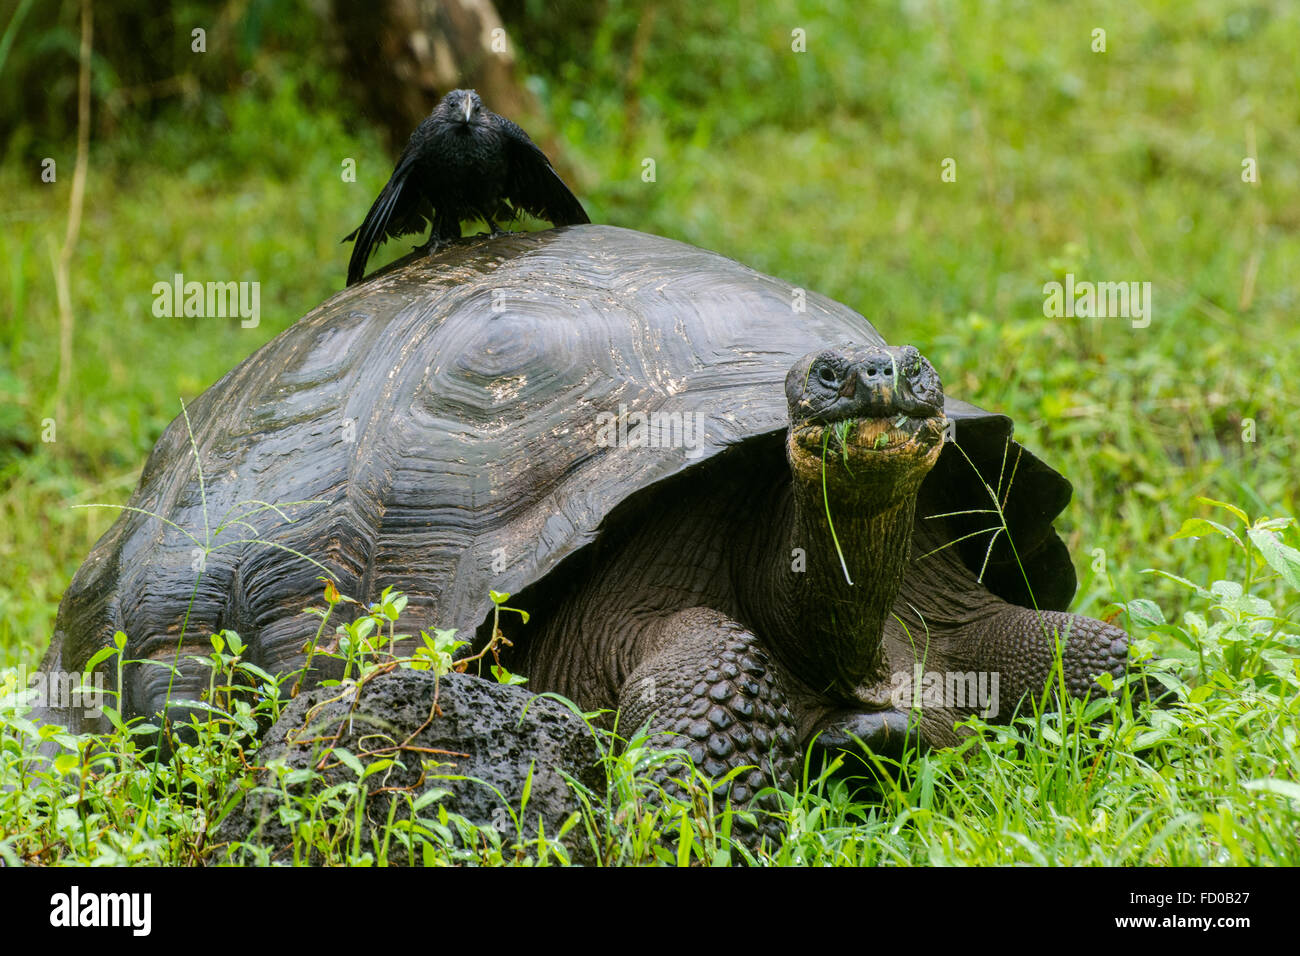 A native Galapagos tortoise with a non native ani sitting on top. - Stock Image